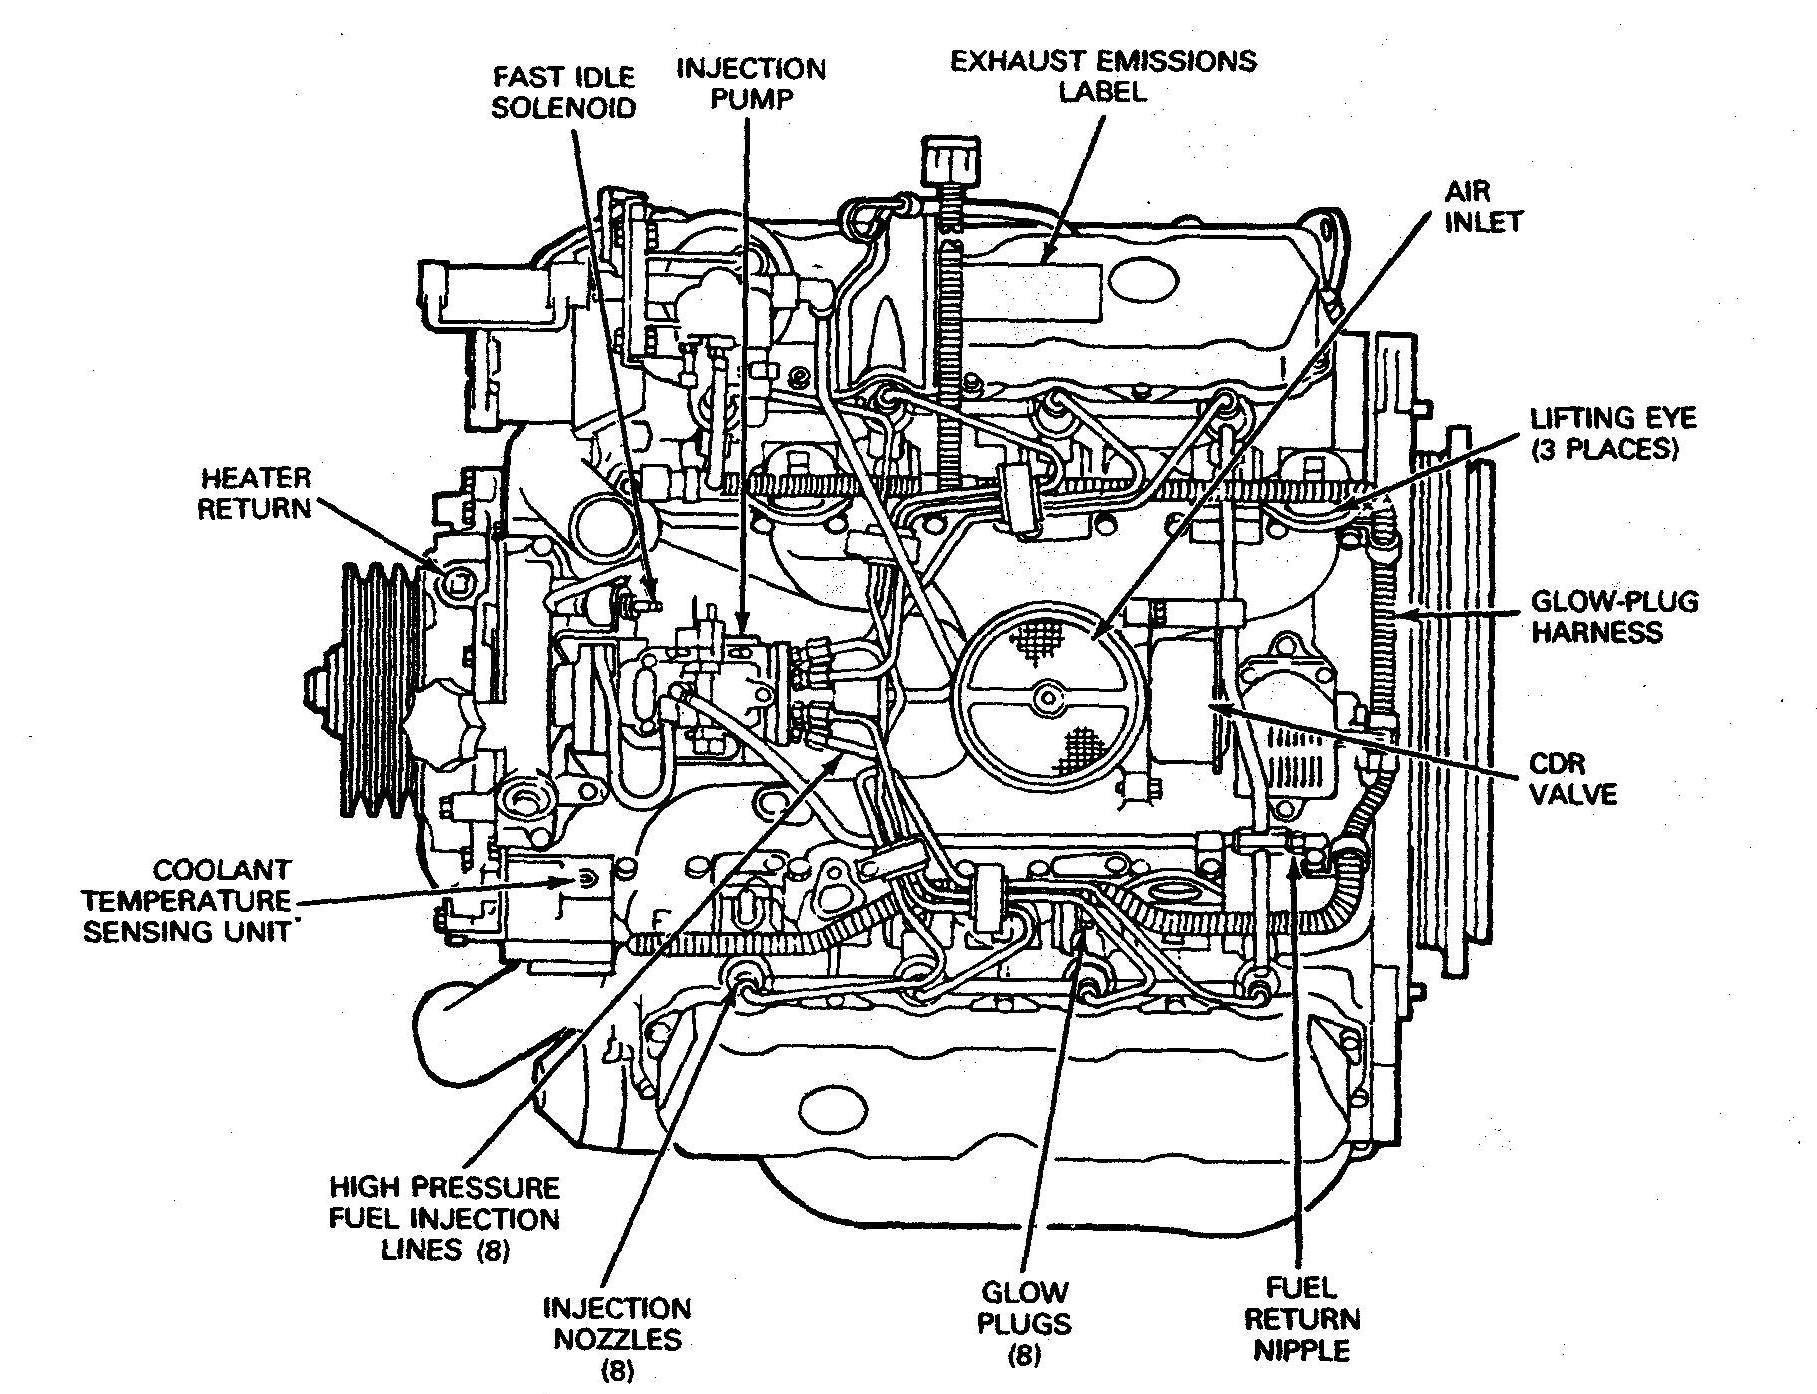 Ford Courier Wiring Diagram Bohr For Lithium Engine George 39s Website Cool Cars Pinterest